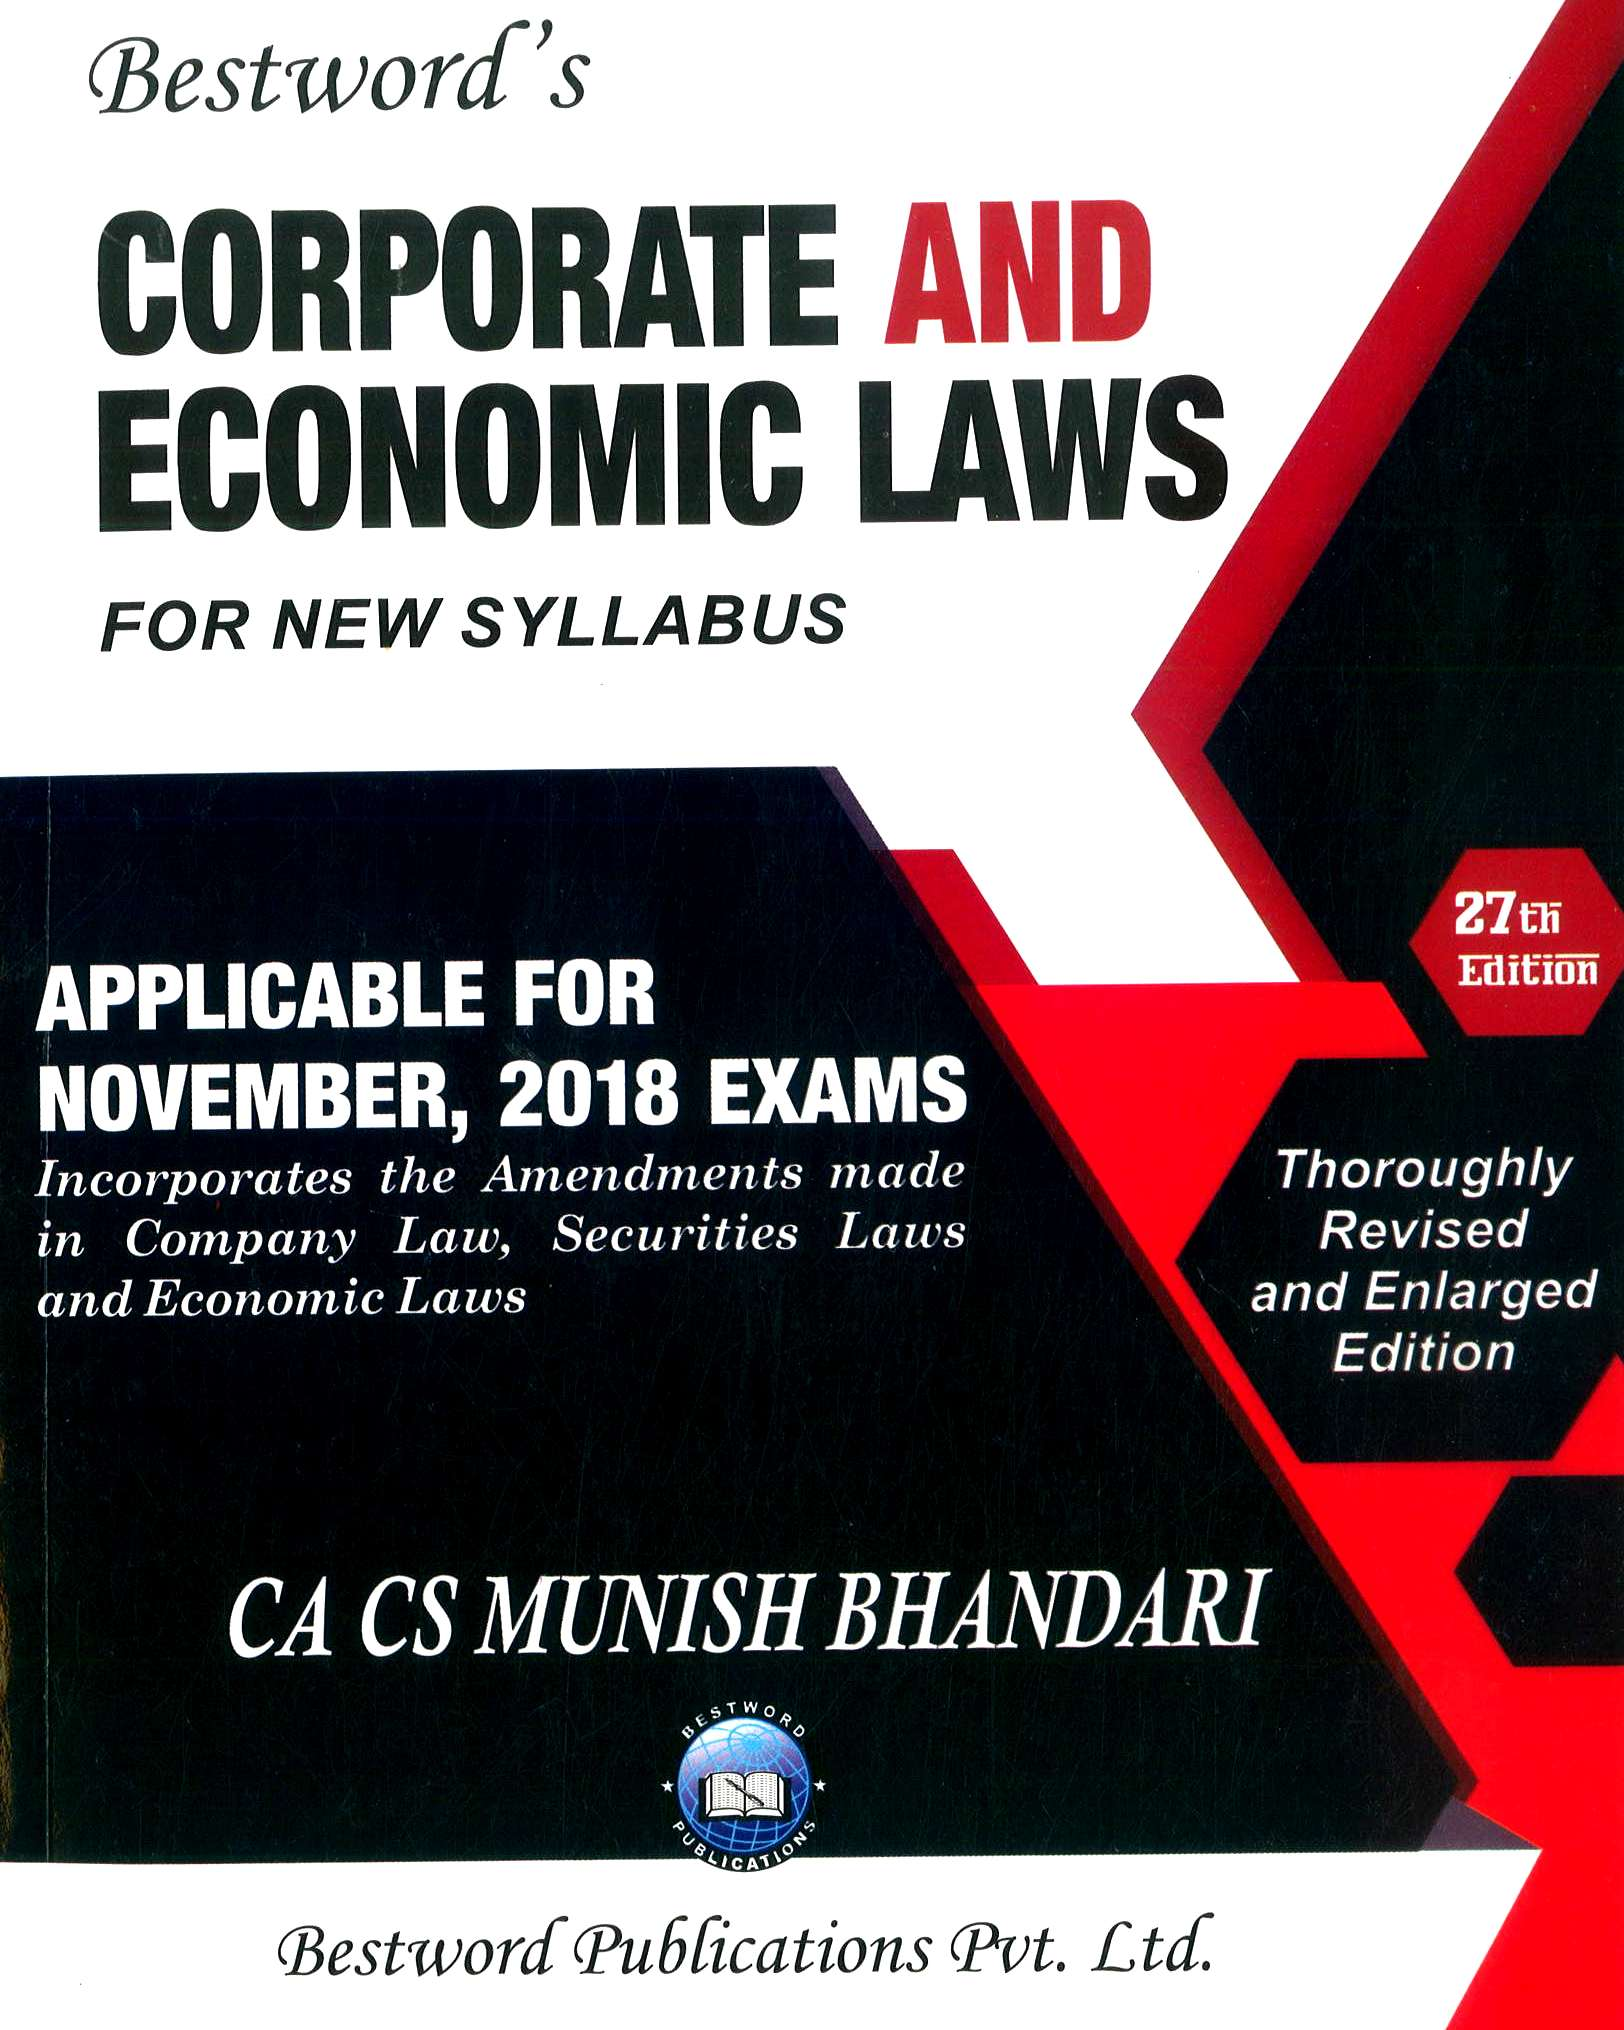 Bestword Corporate And Economic Laws New Syllabus for CA Final By Munish Bhandari 27th edition 2018 Applicable for Nov 2018 Exam